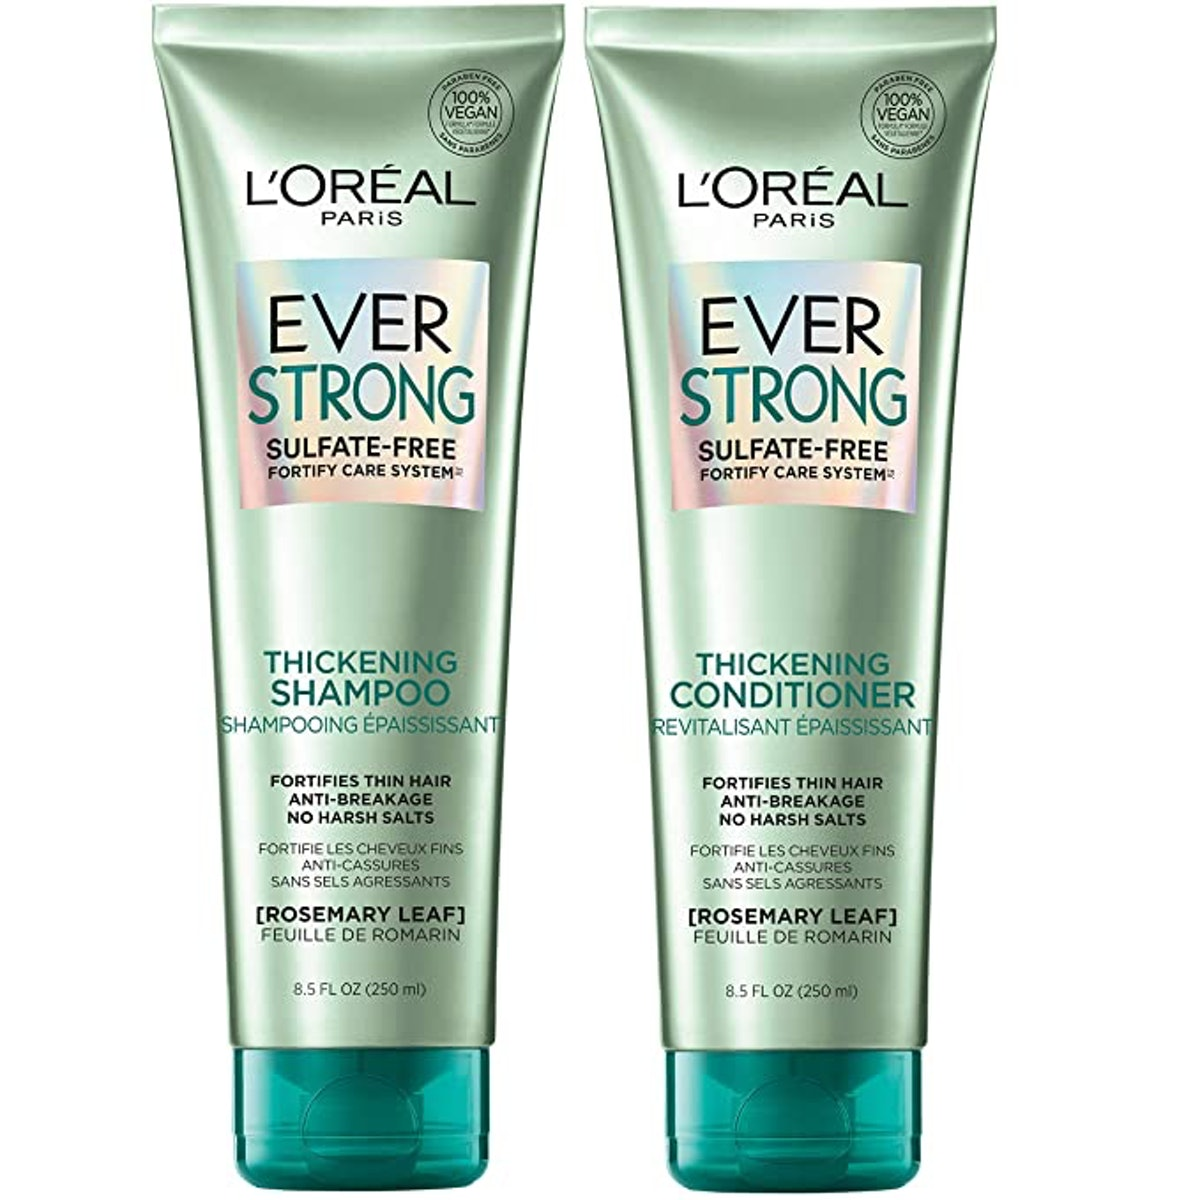 L'Oreal Paris EverStrong Thickening Sulfate Free Shampoo and Conditioner Kit